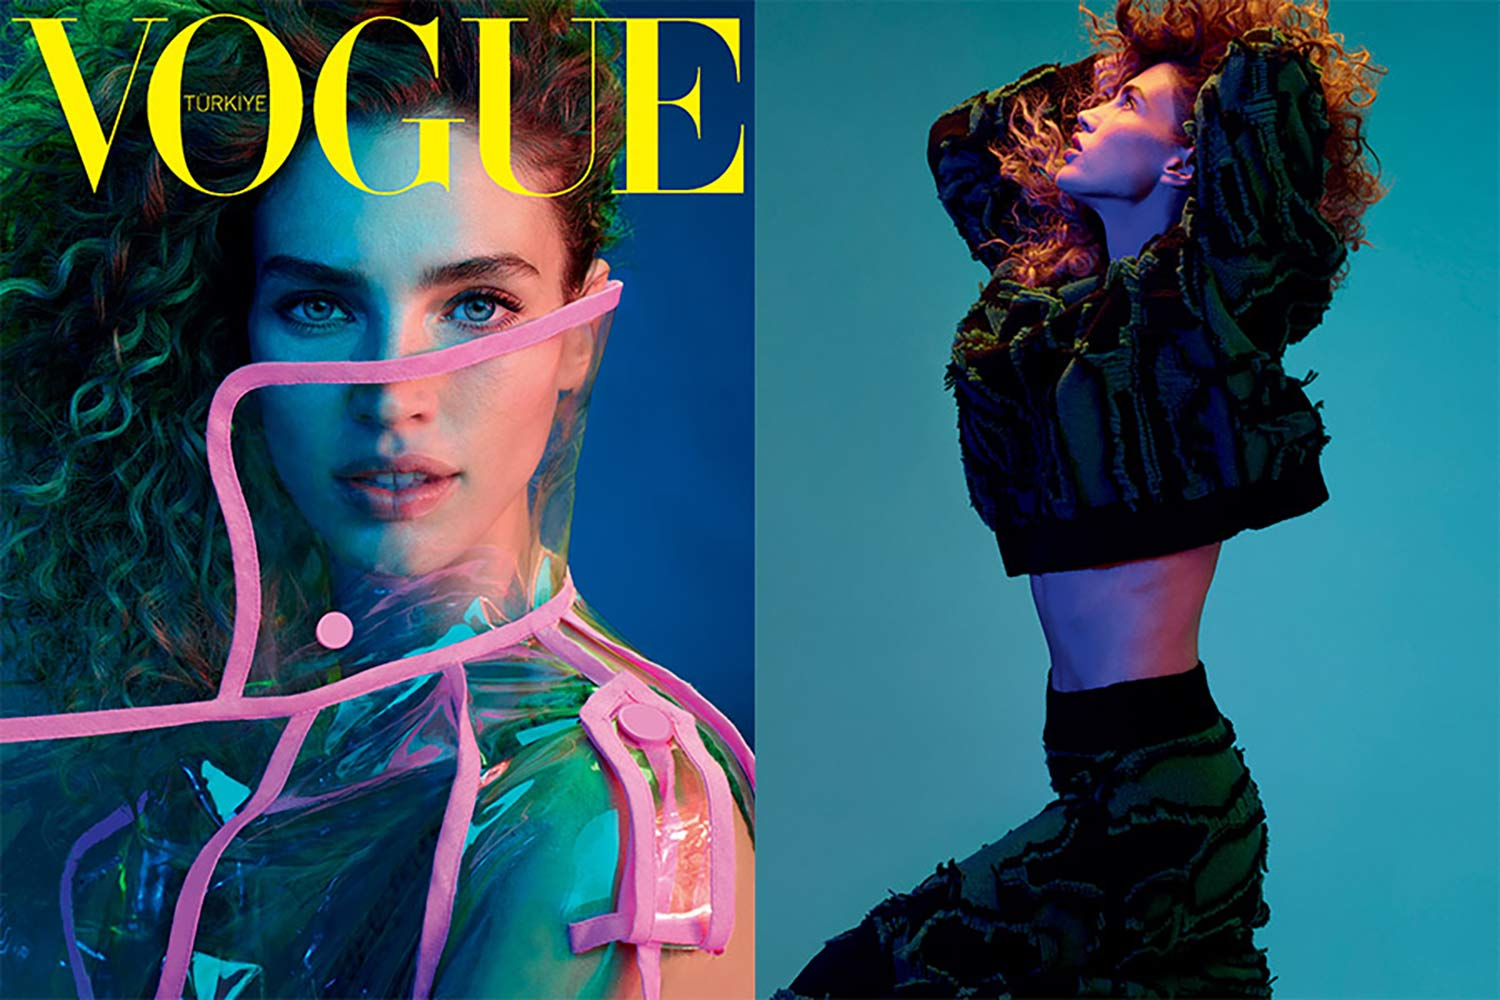 Vogue Turkey by Cuneyt Akeroglu